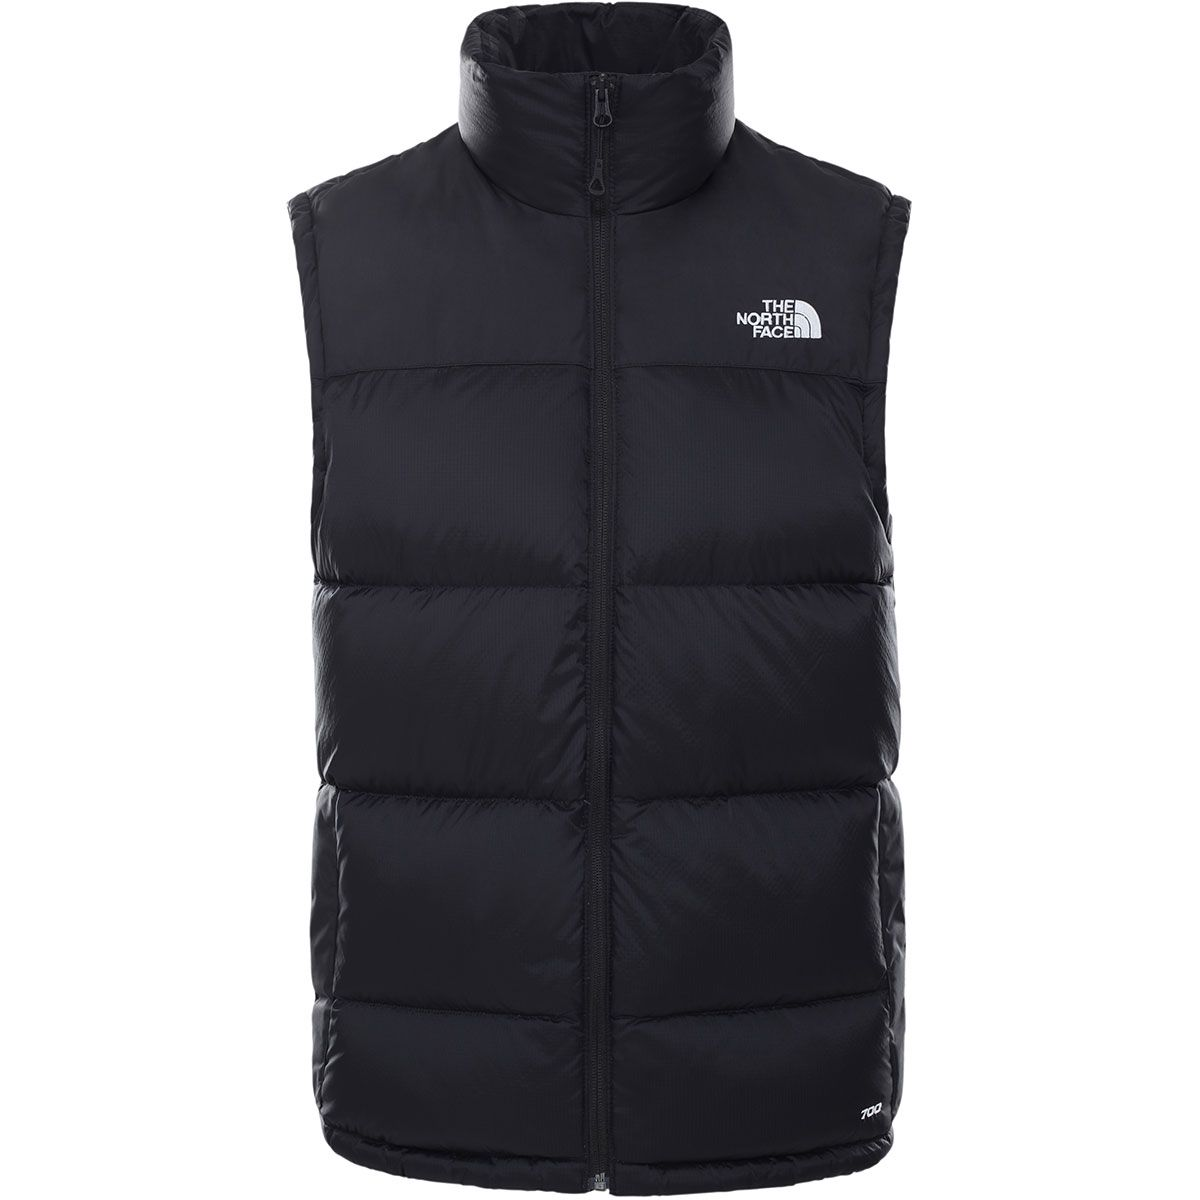 Gilet The North Face THE NORTH FACE   -276790253   NF0A3JQQJK31